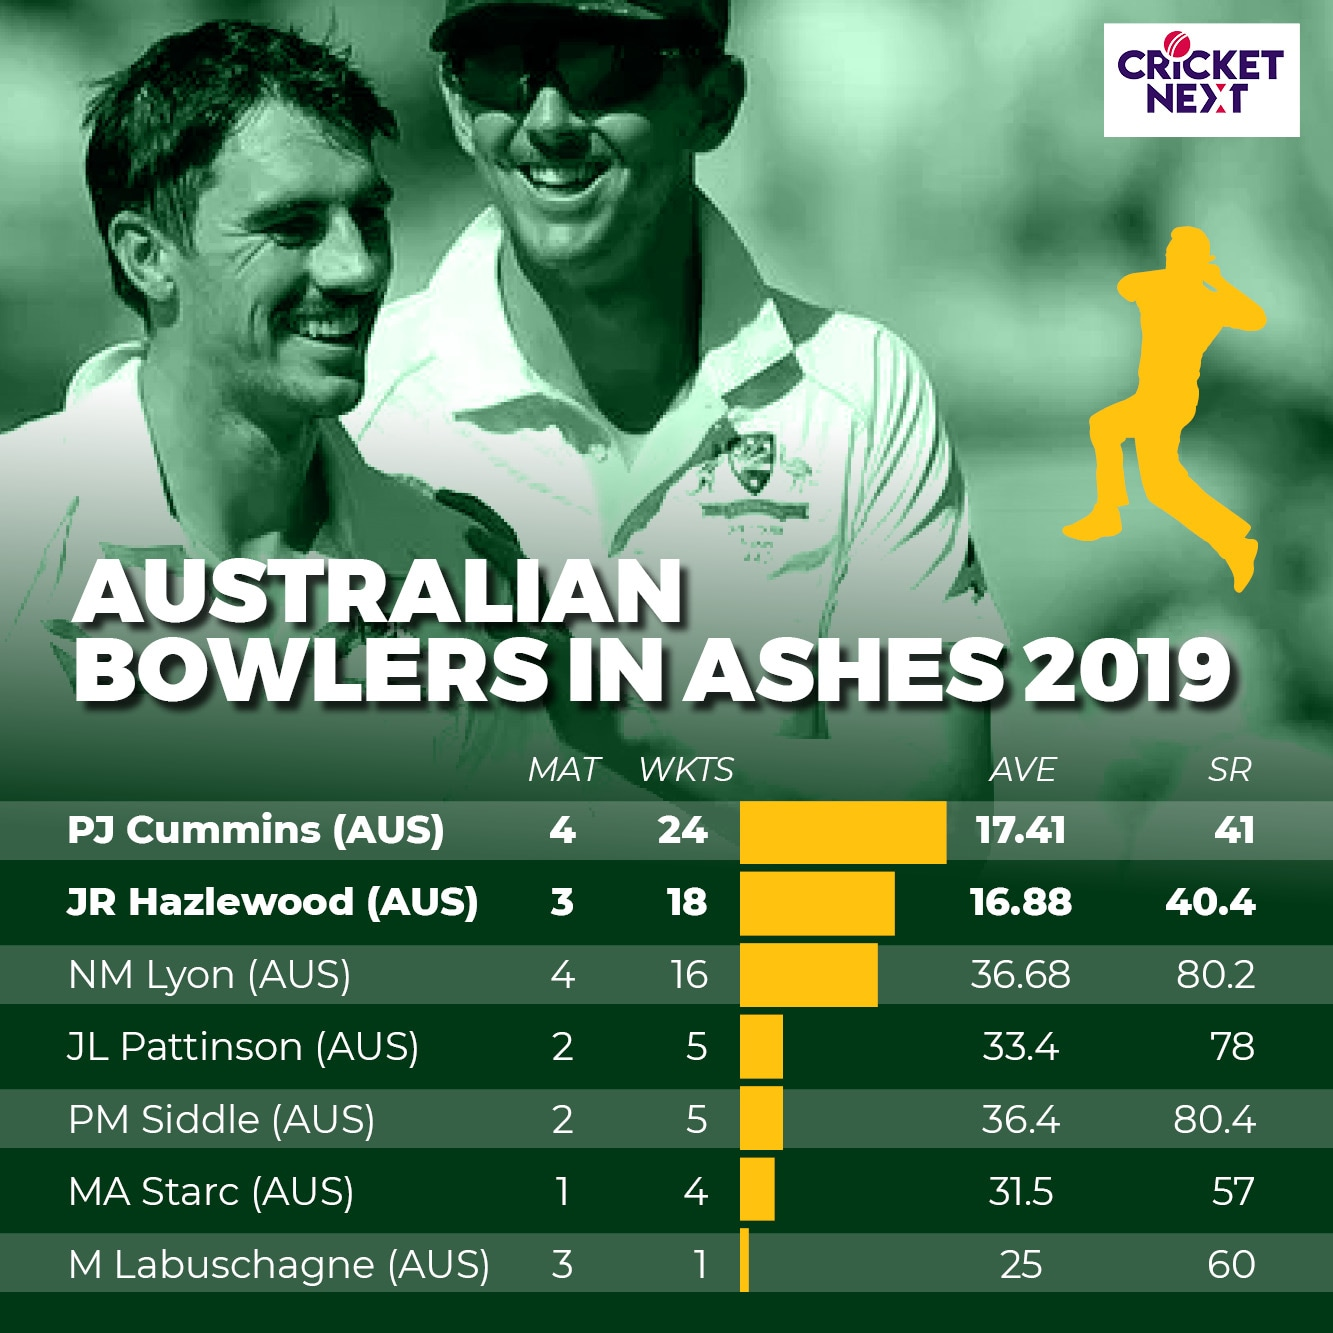 AUS bowlers in ASHES 20192